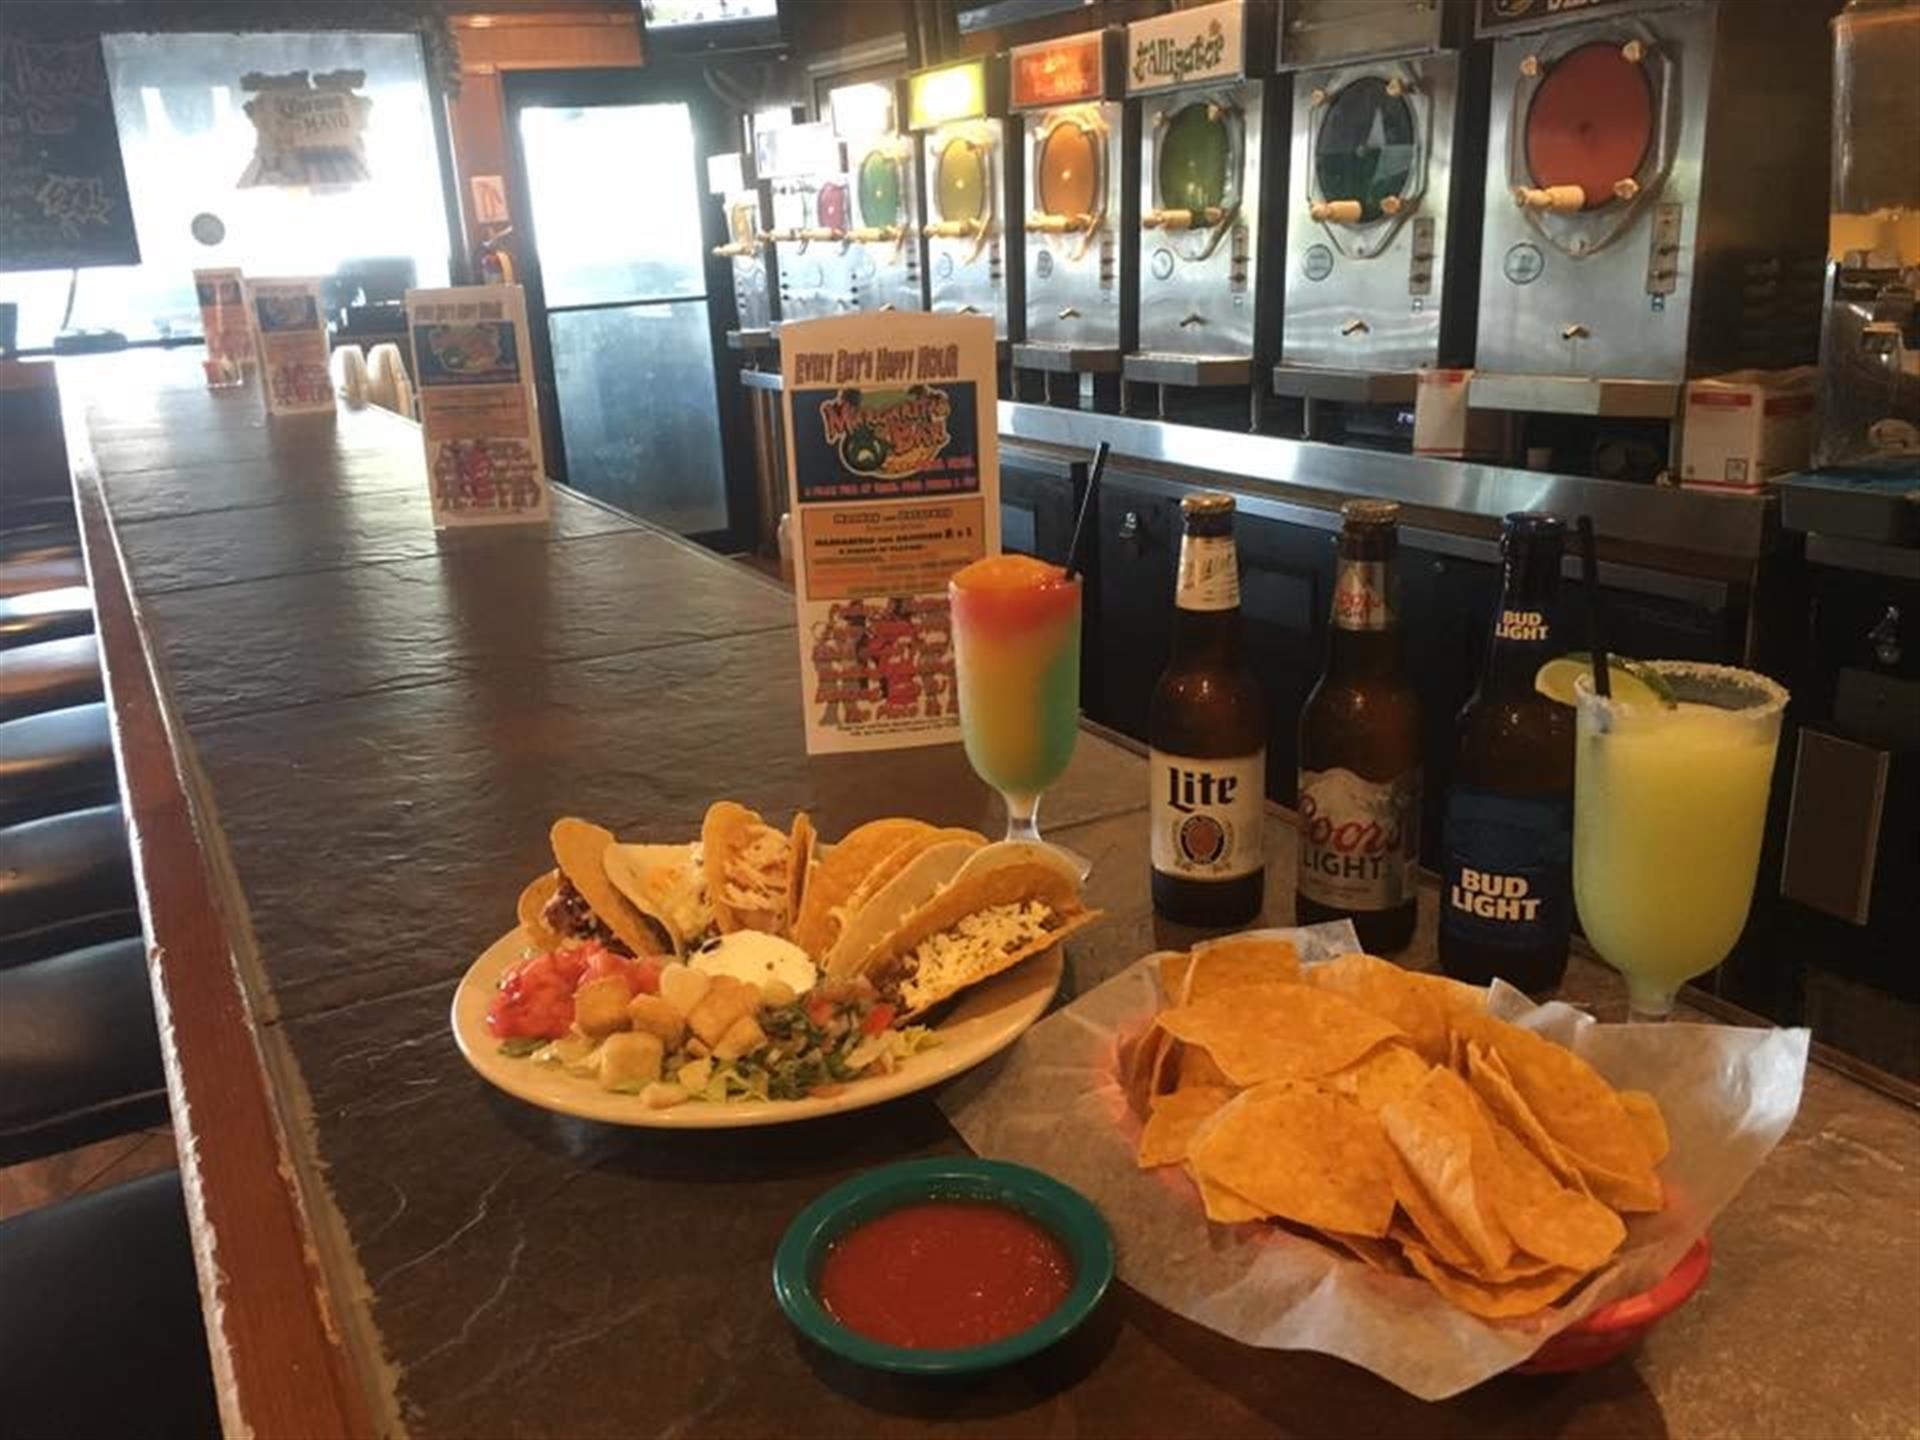 three bottles of beer with a plate of food and nacho chips on the side